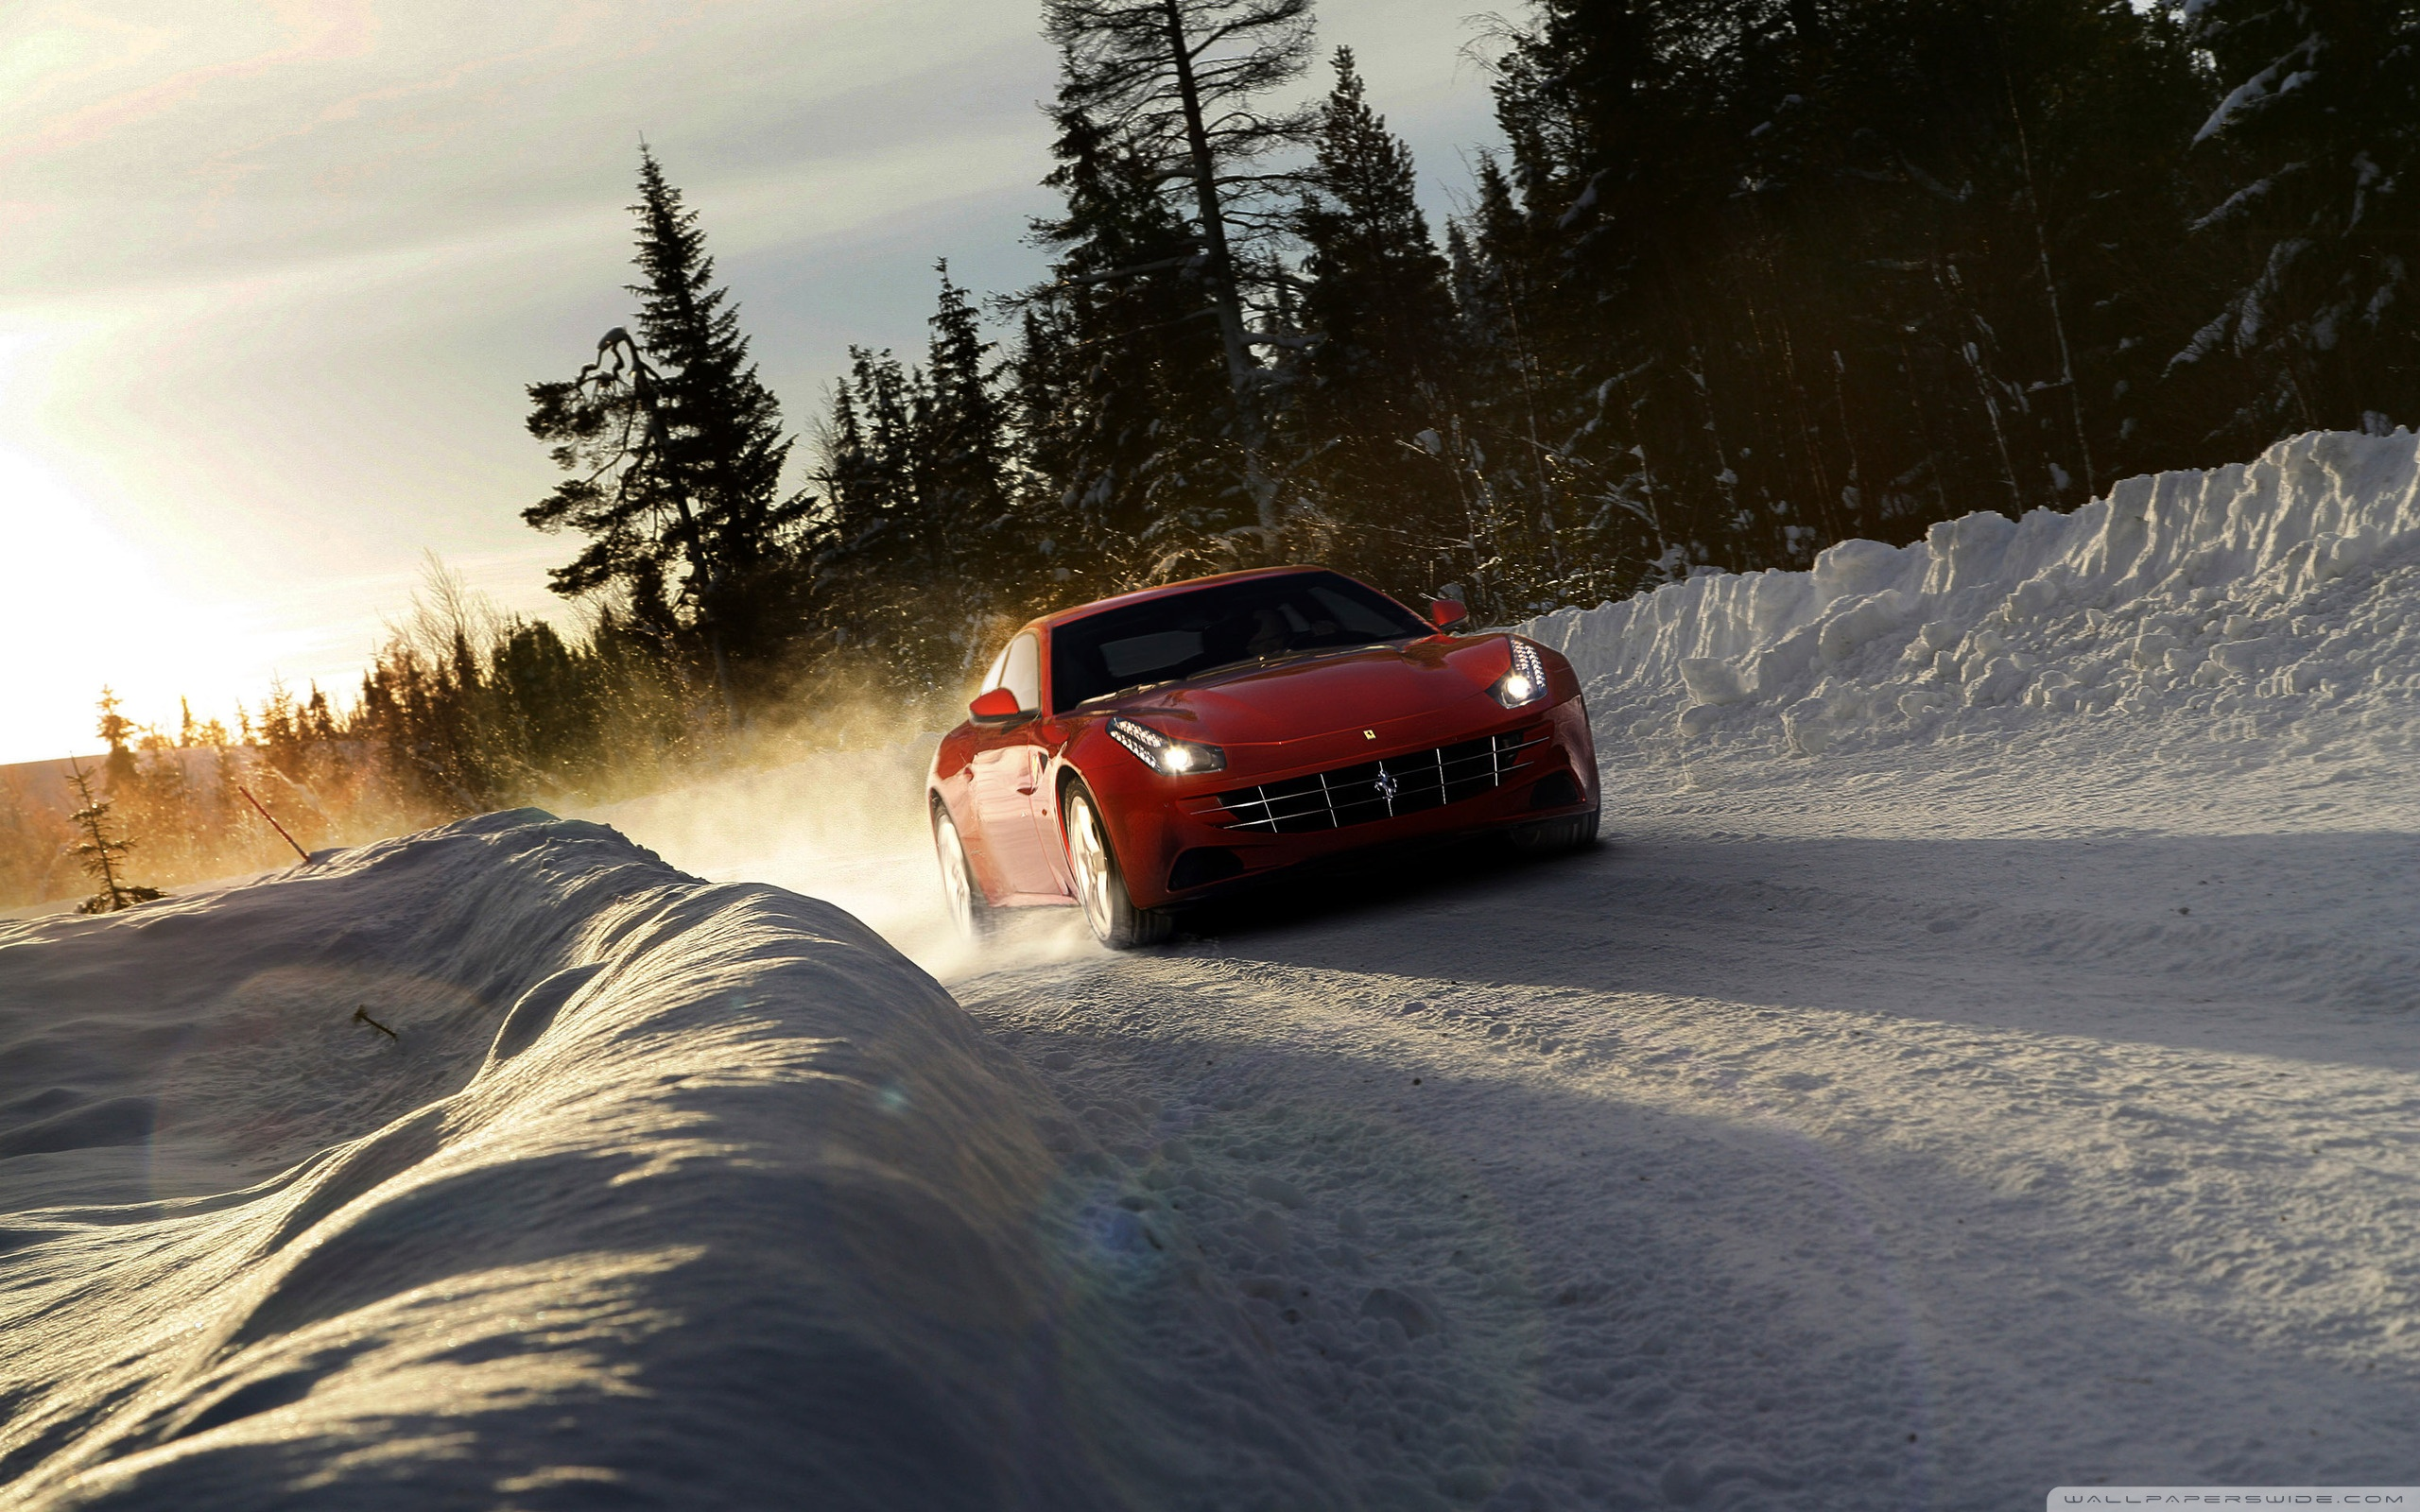 2560x1600 - Ferrari FF Wallpapers 3